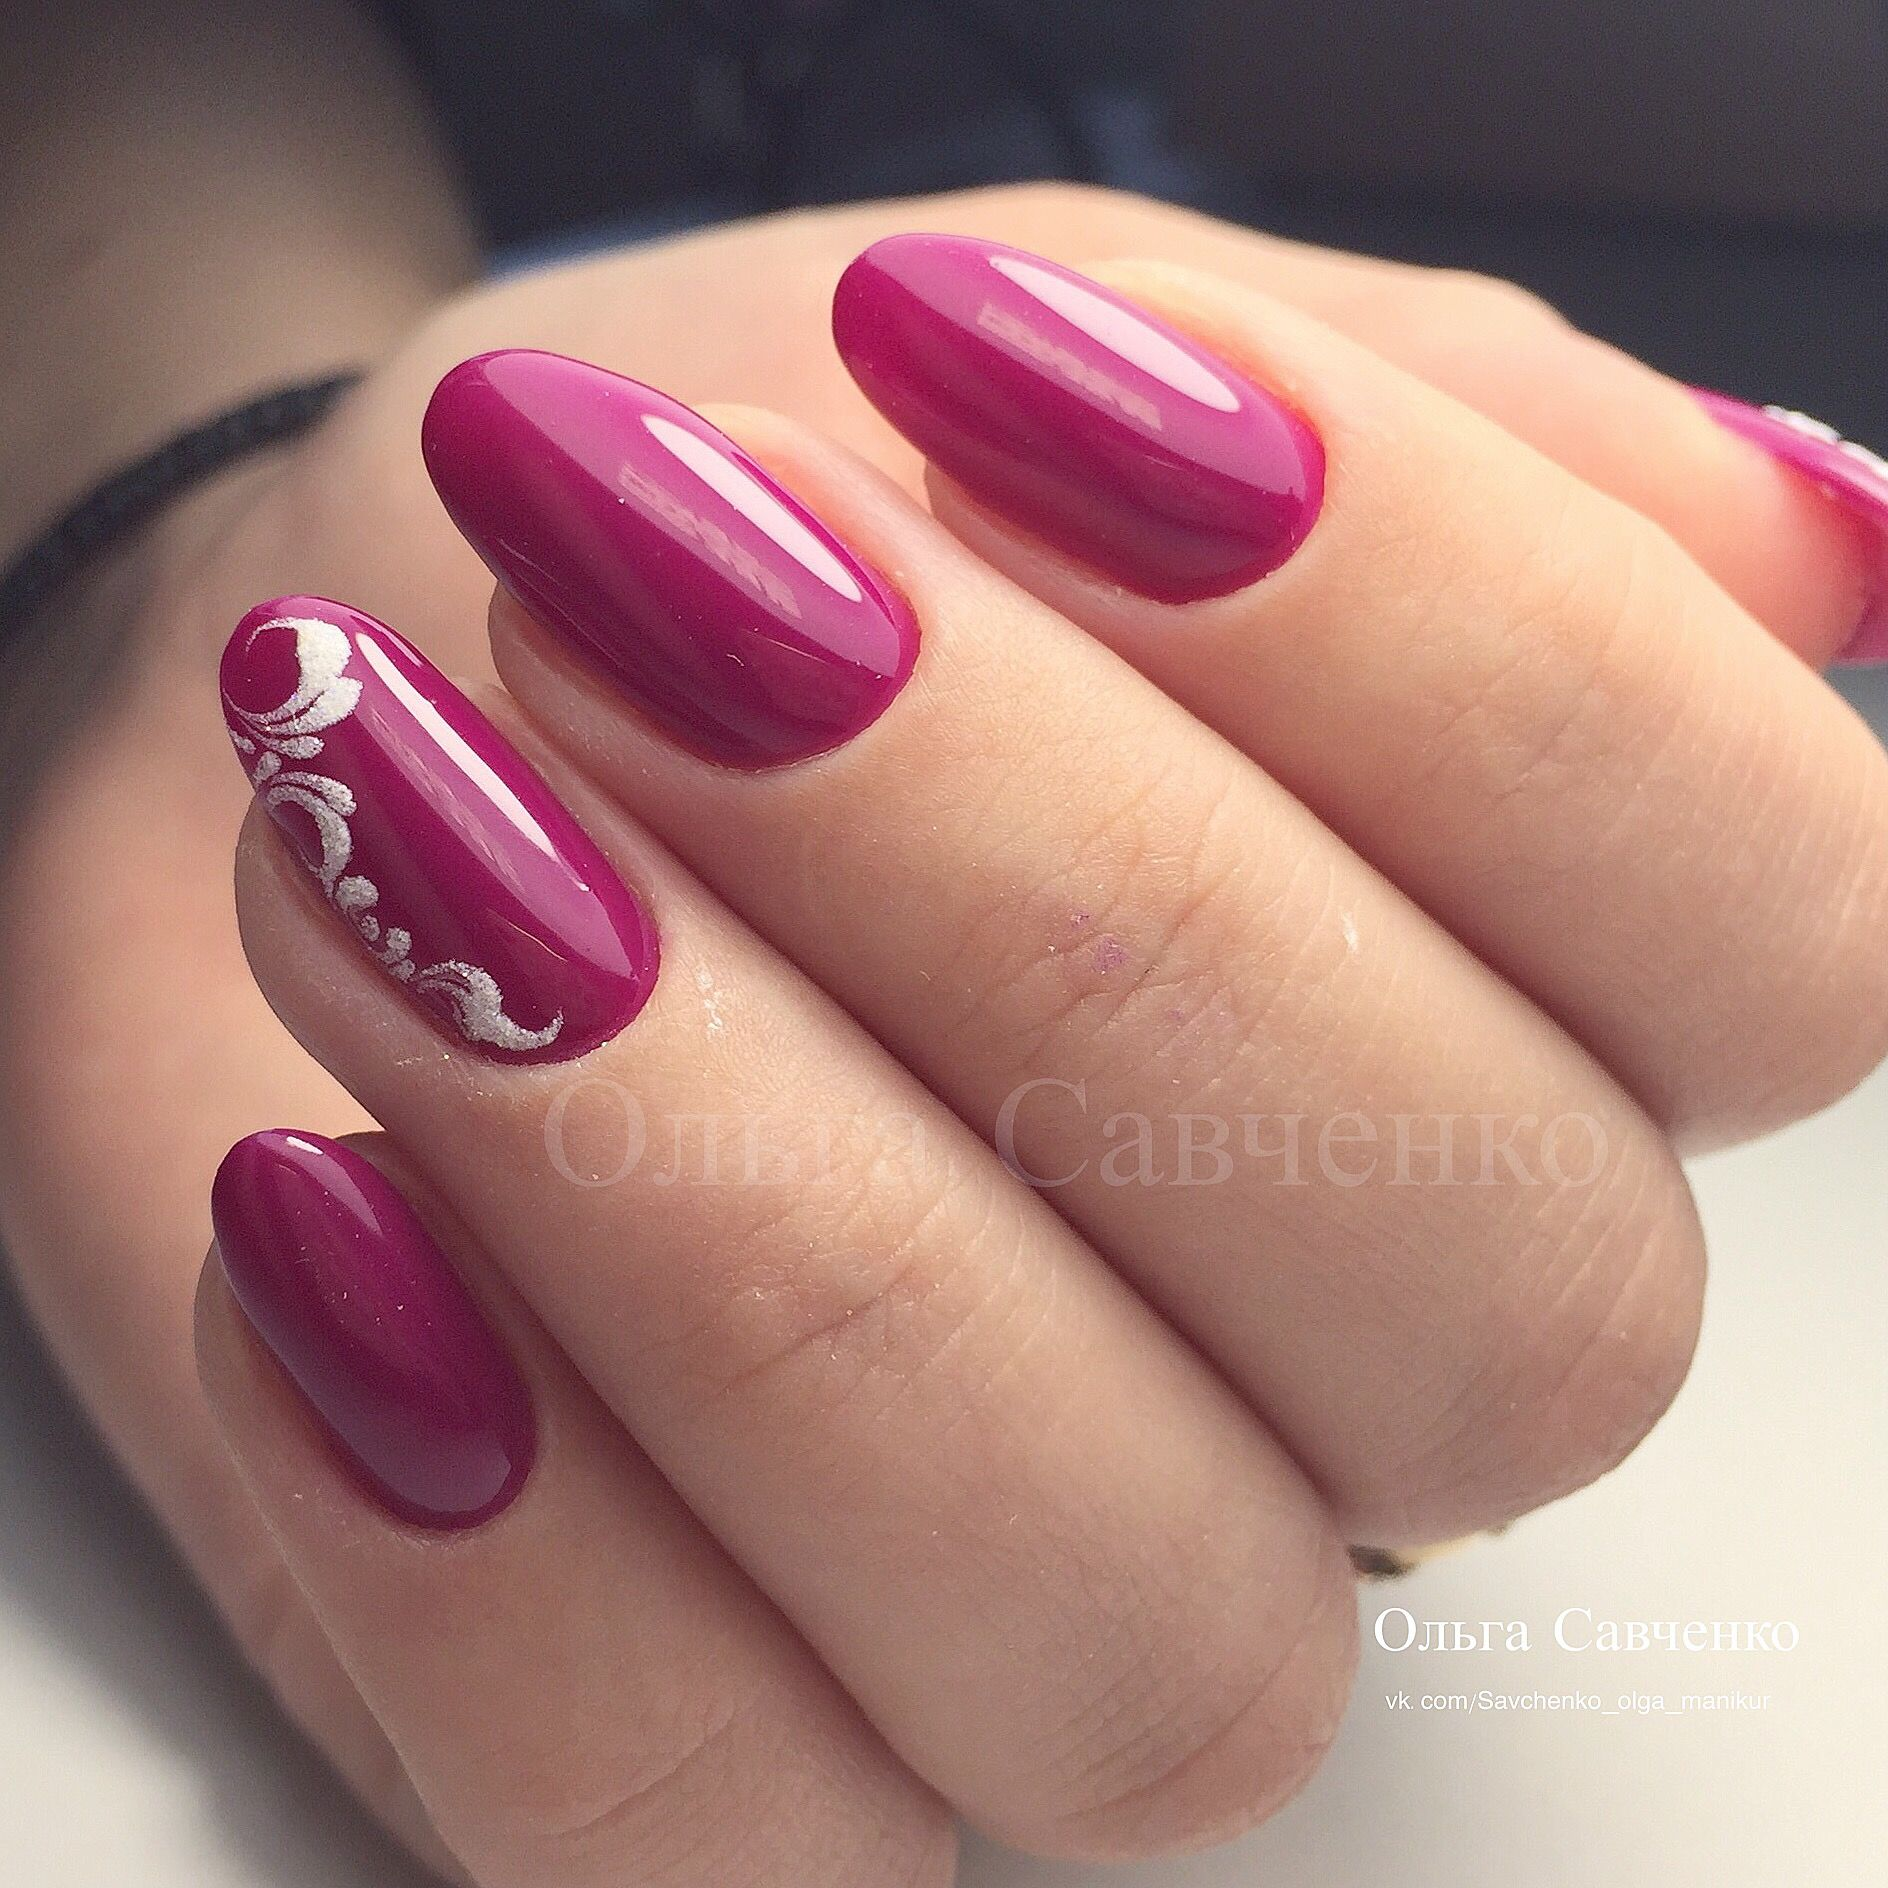 perfect application of polish; not fond of color, but beautifully crafted